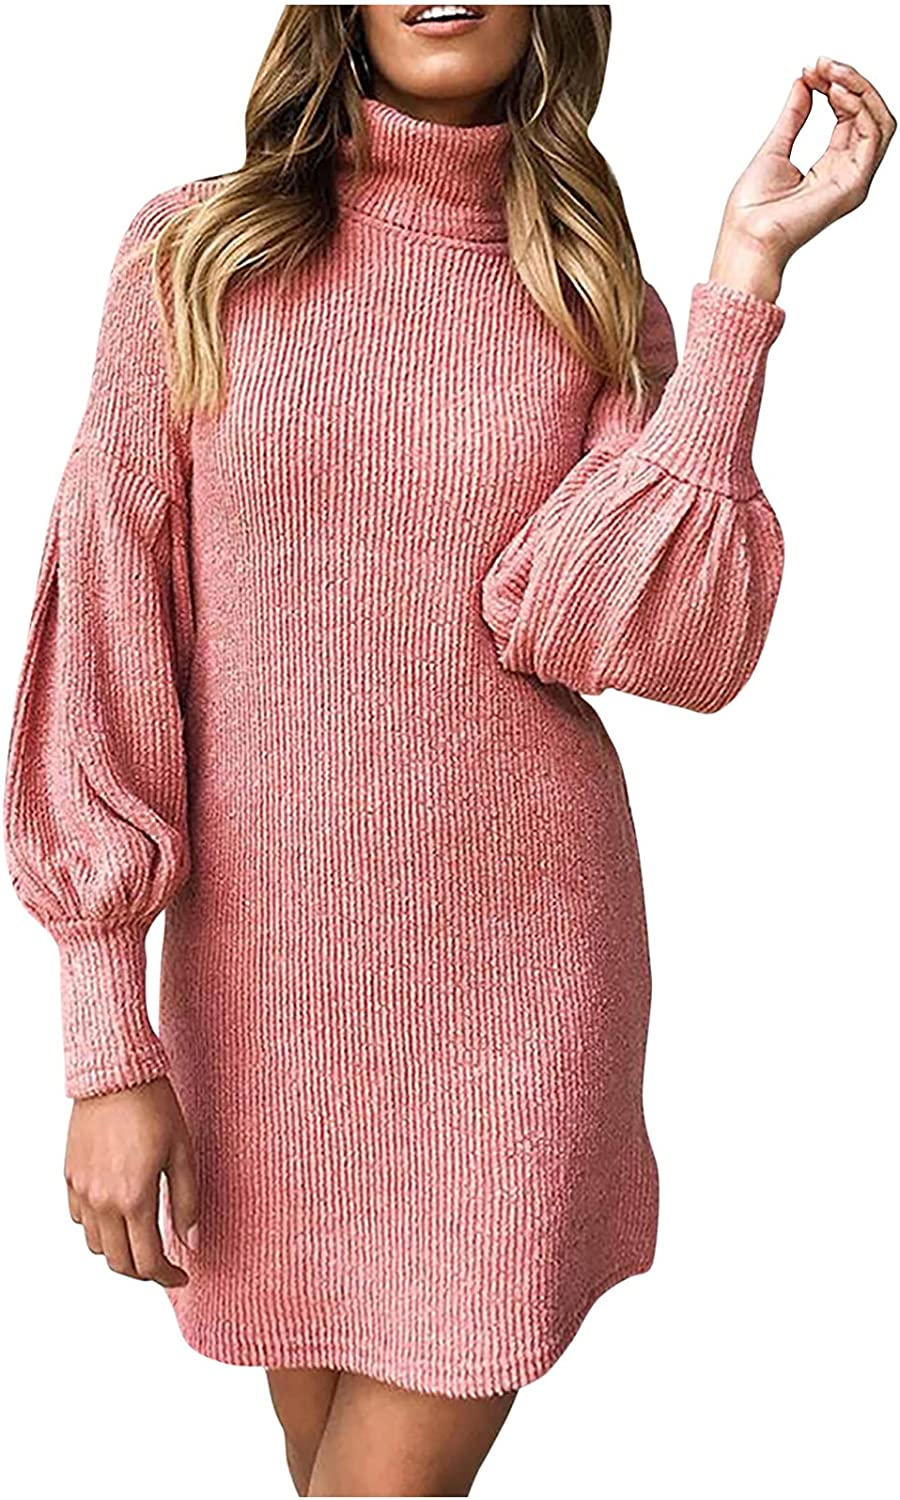 LUGOGNE Fall Sweaters for Women Black Turtleneck Casual Solid Color Long Sleeve Loose Fit Dress Pullover Sweater